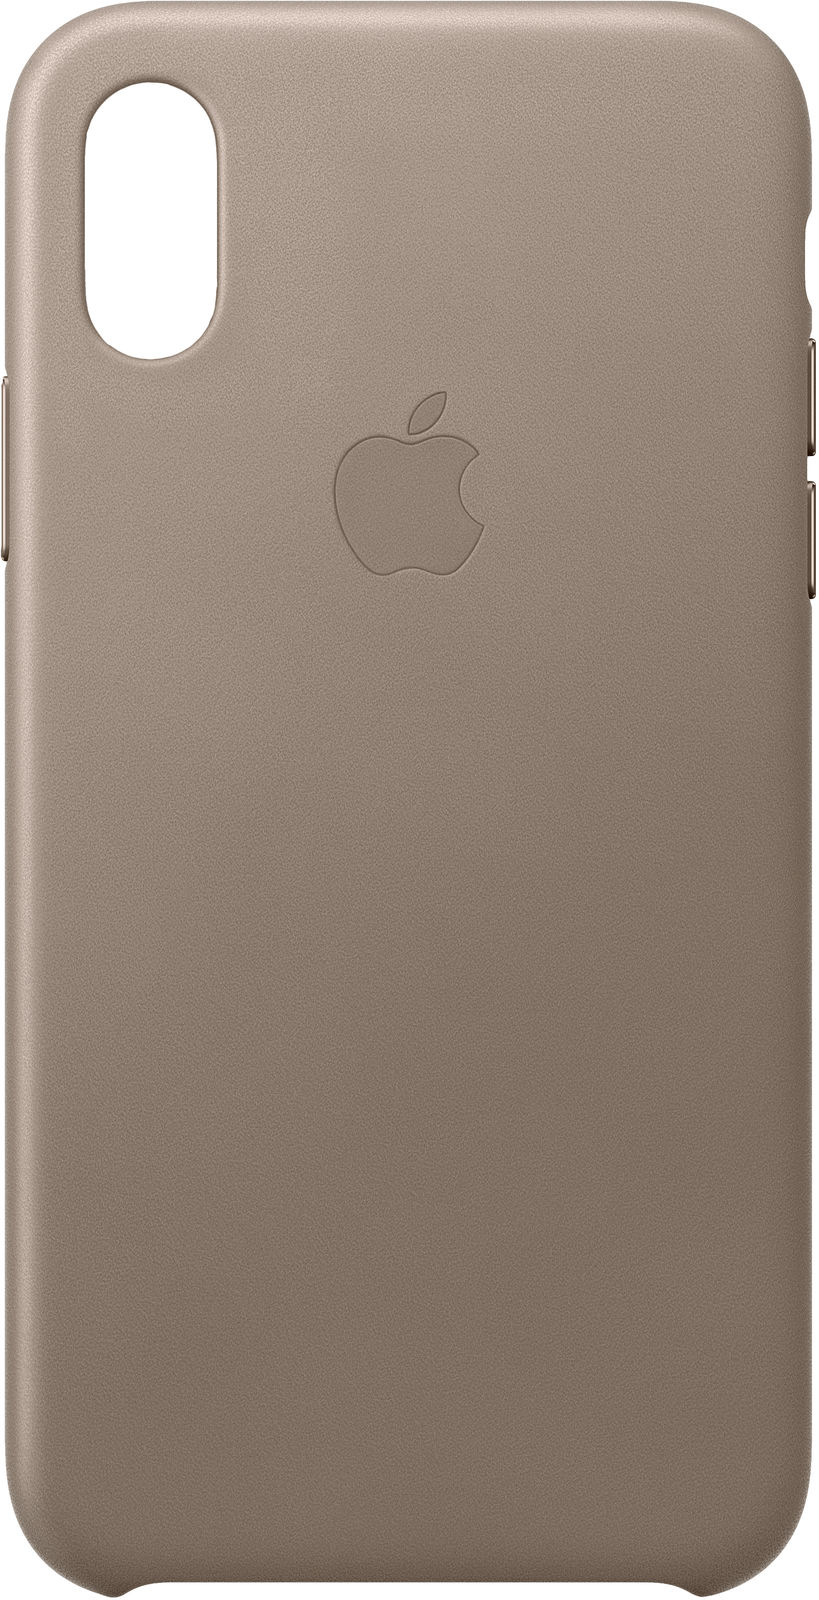 iPhone Xs - Leather Case - Taupe